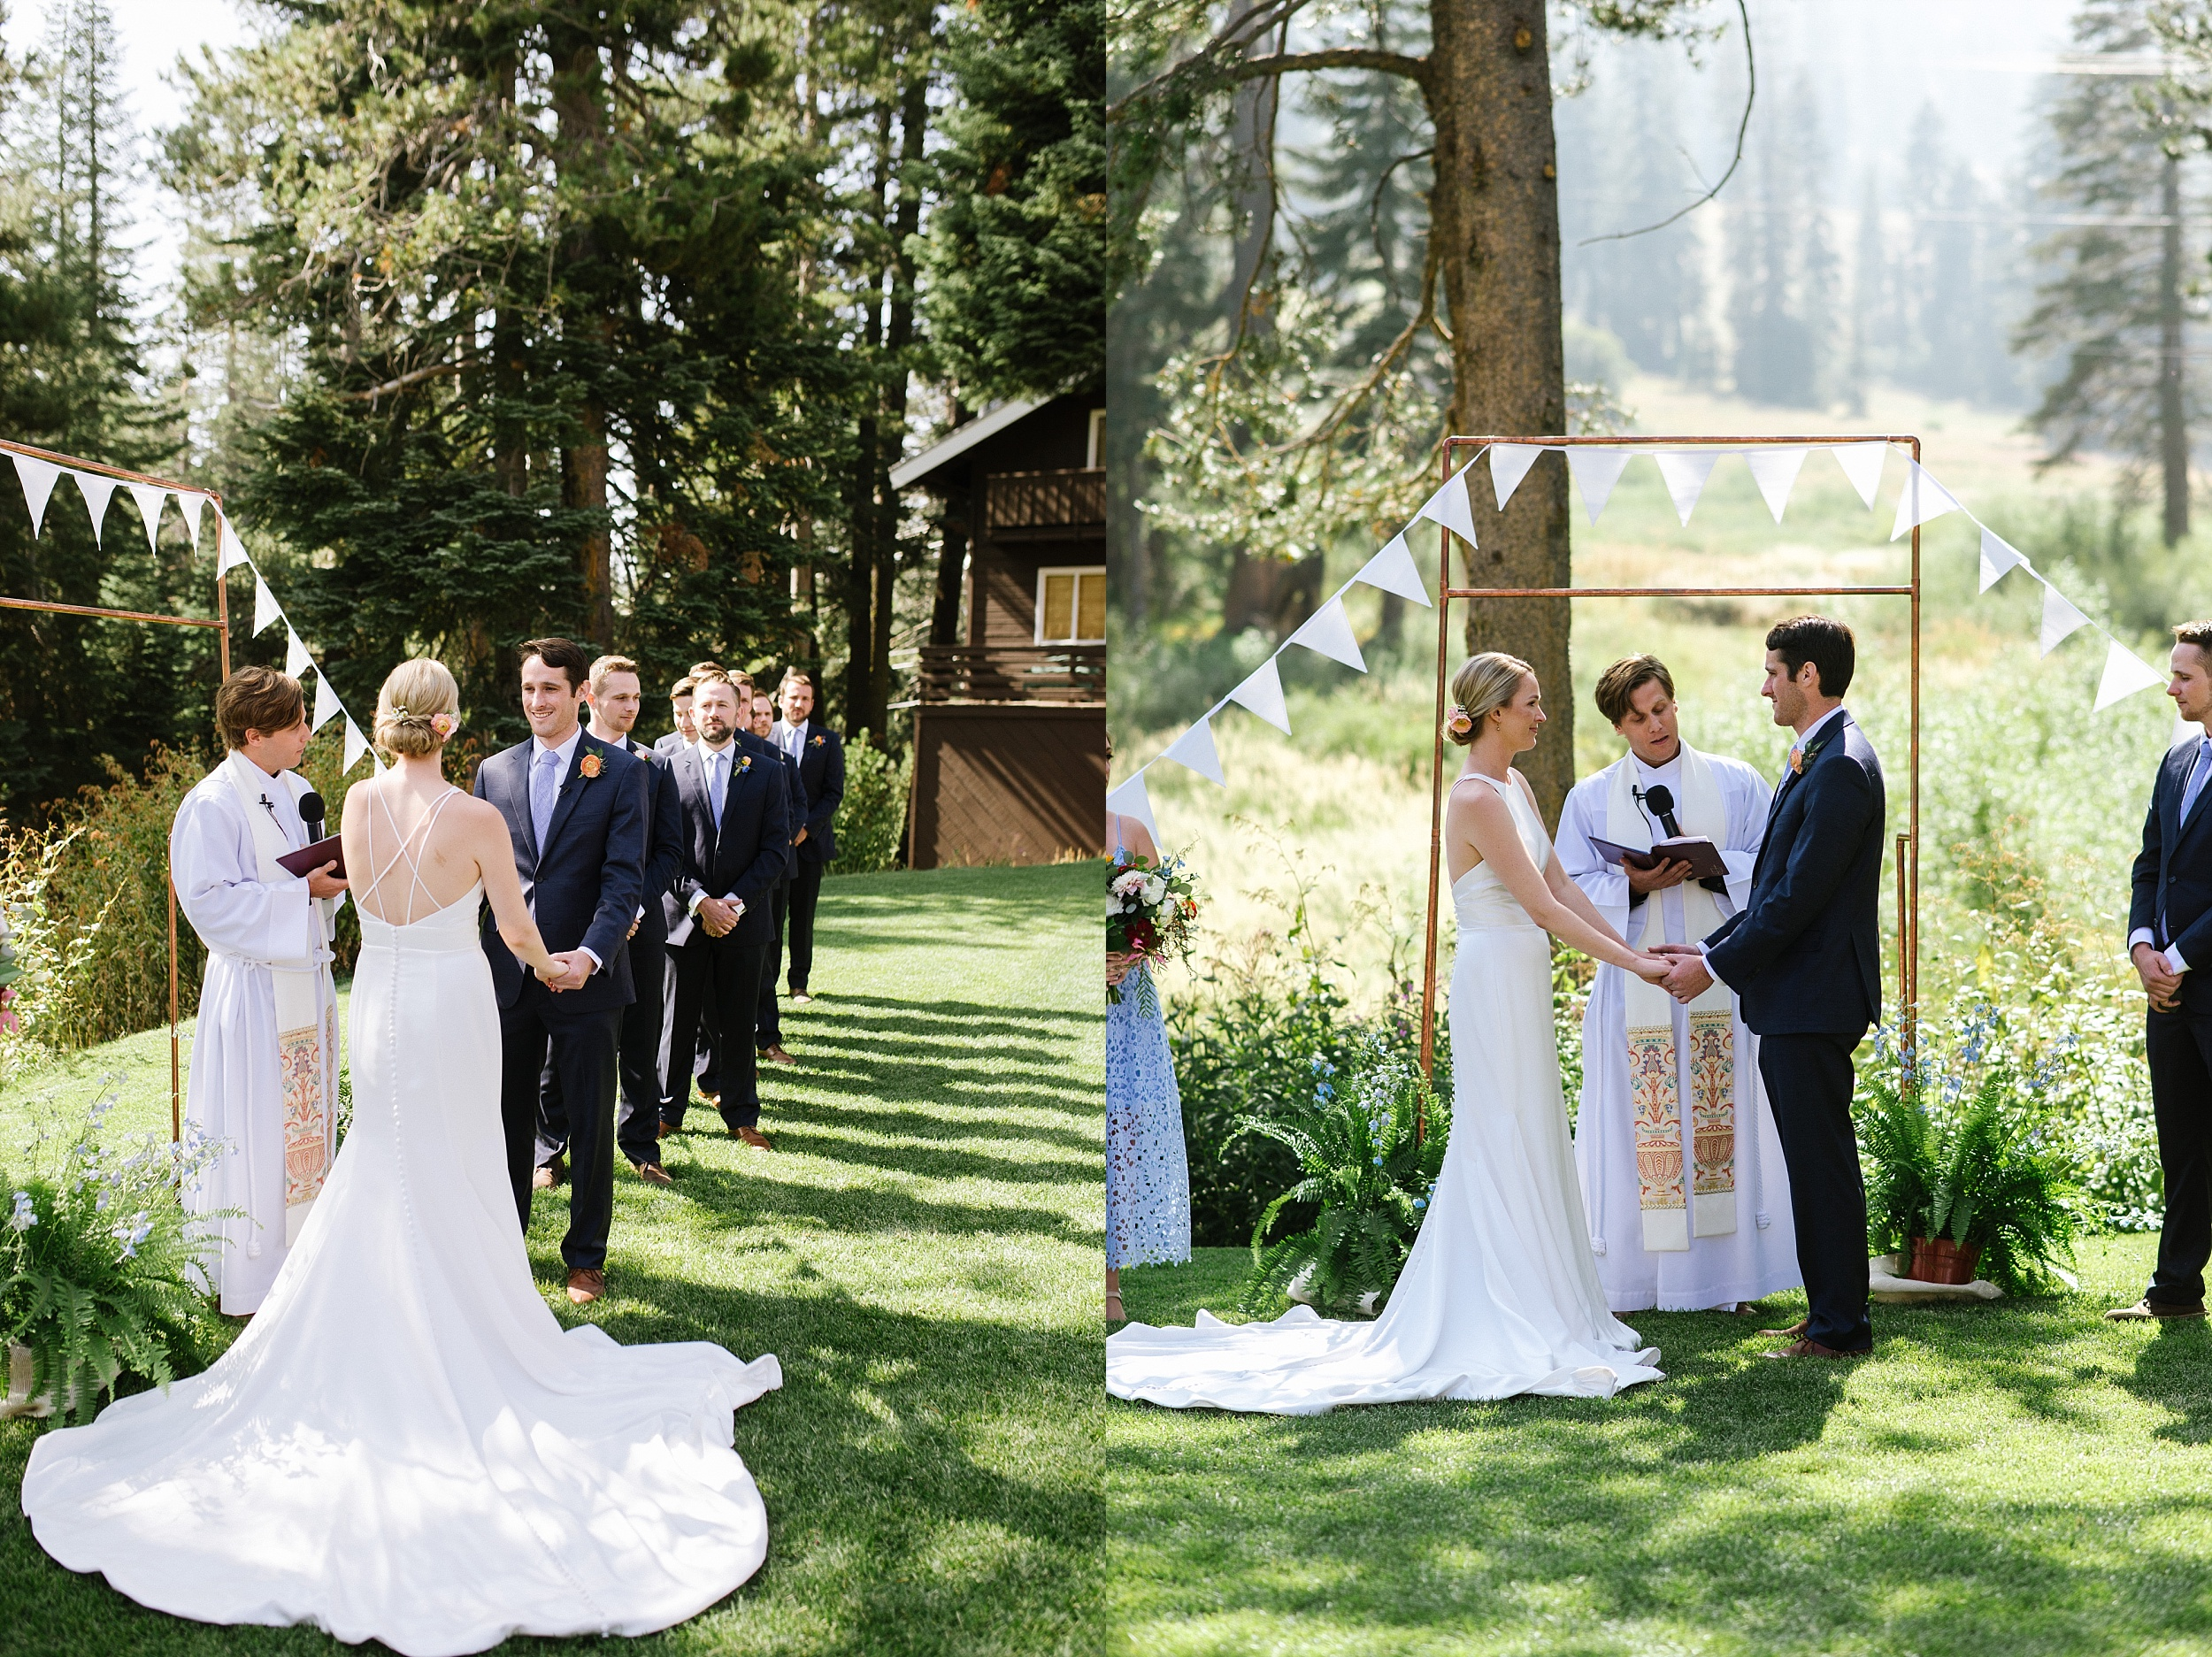 Sugar-Bowl-tahoe-wedding-sallyjohn_chelsea-dier-photography_0021.jpg